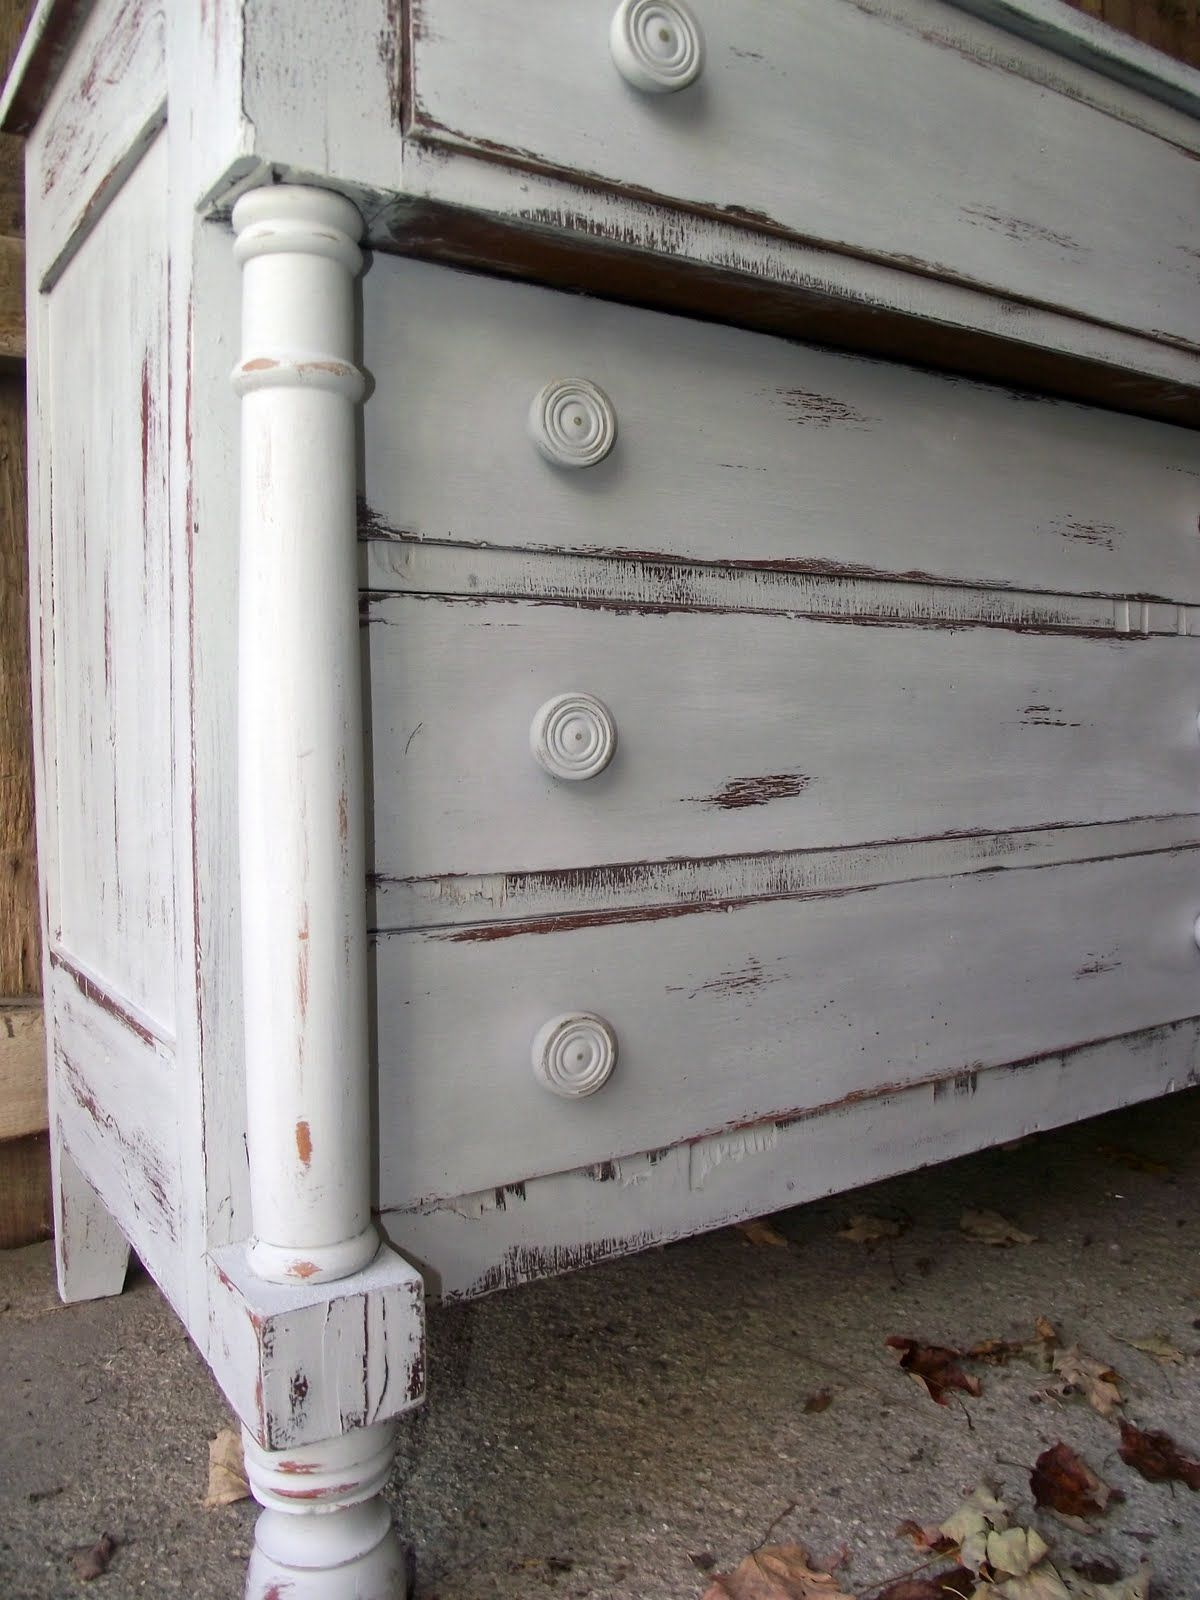 Pin By Tara Carney Duhe On Feather The Nest Diy Dresser Annie Sloan Chalk Paint Projects Furniture Inspiration [ 1600 x 1200 Pixel ]